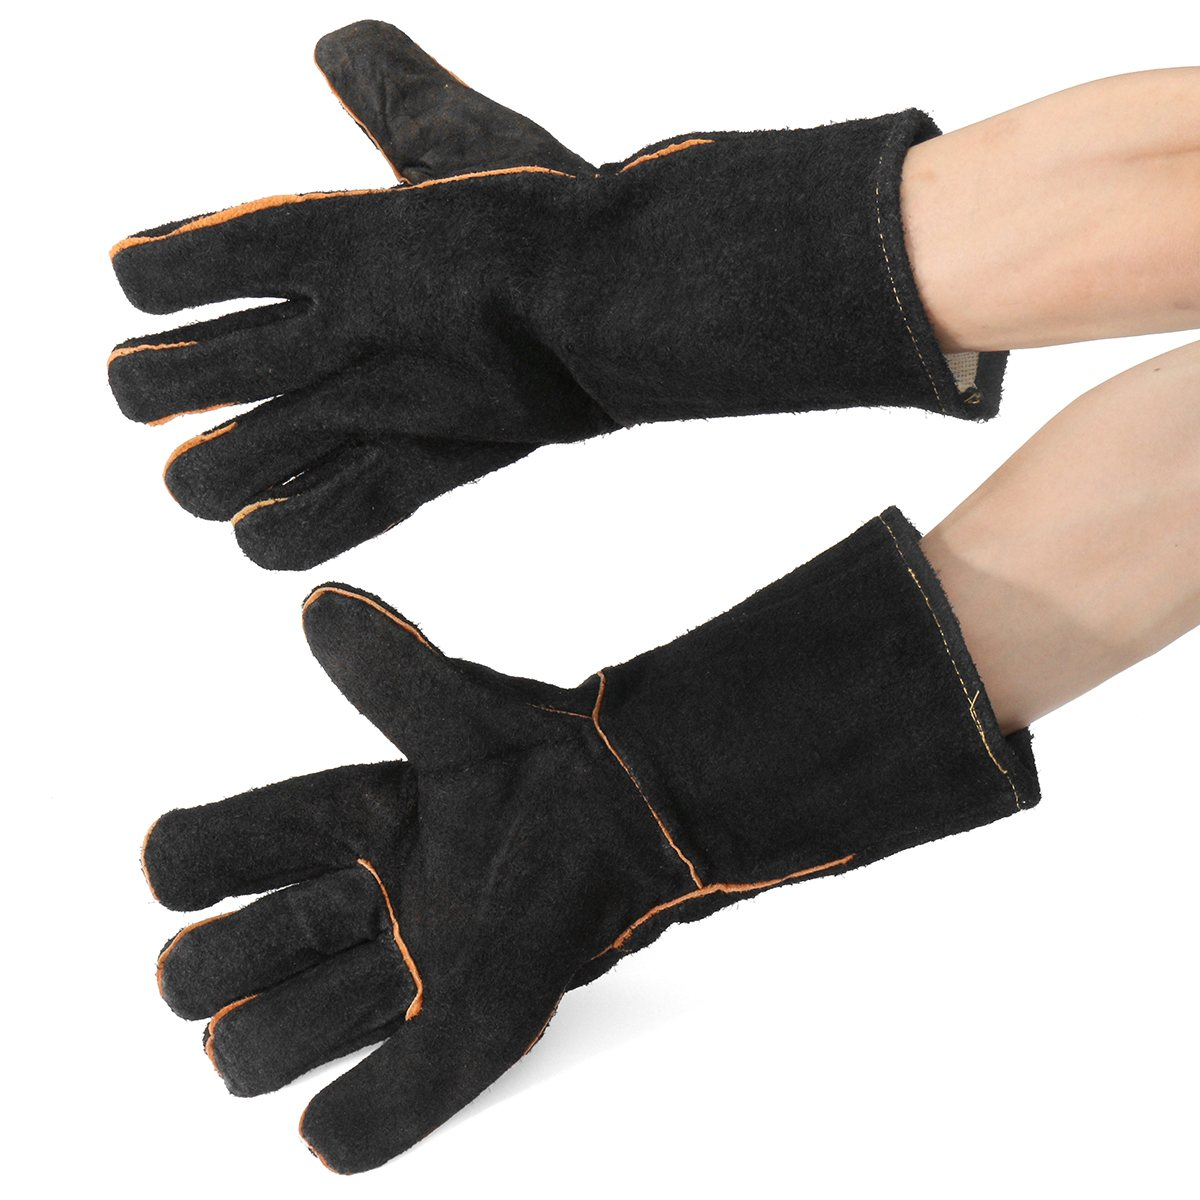 NEW 32cm XL Heavy Duty Welding Gloves Stoves PU Leather Cowhide Protect Welder Hands Workplace Safety Glove welder machine plasma cutter welder mask for welder machine